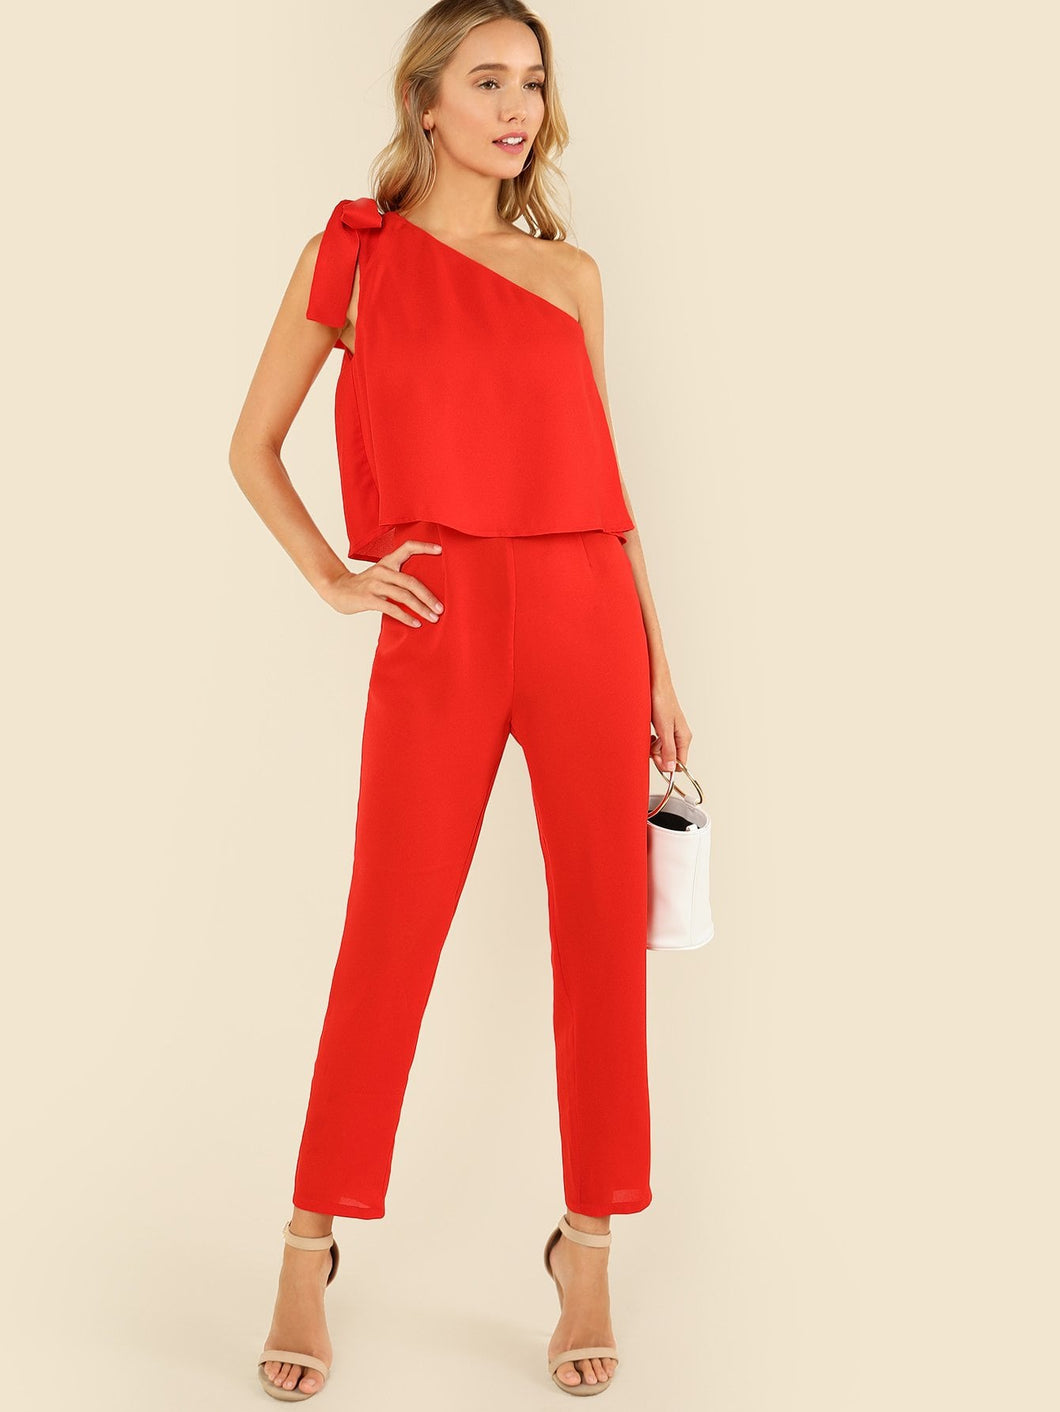 Tied One Shoulder Ruffle Embellished Jumpsuit